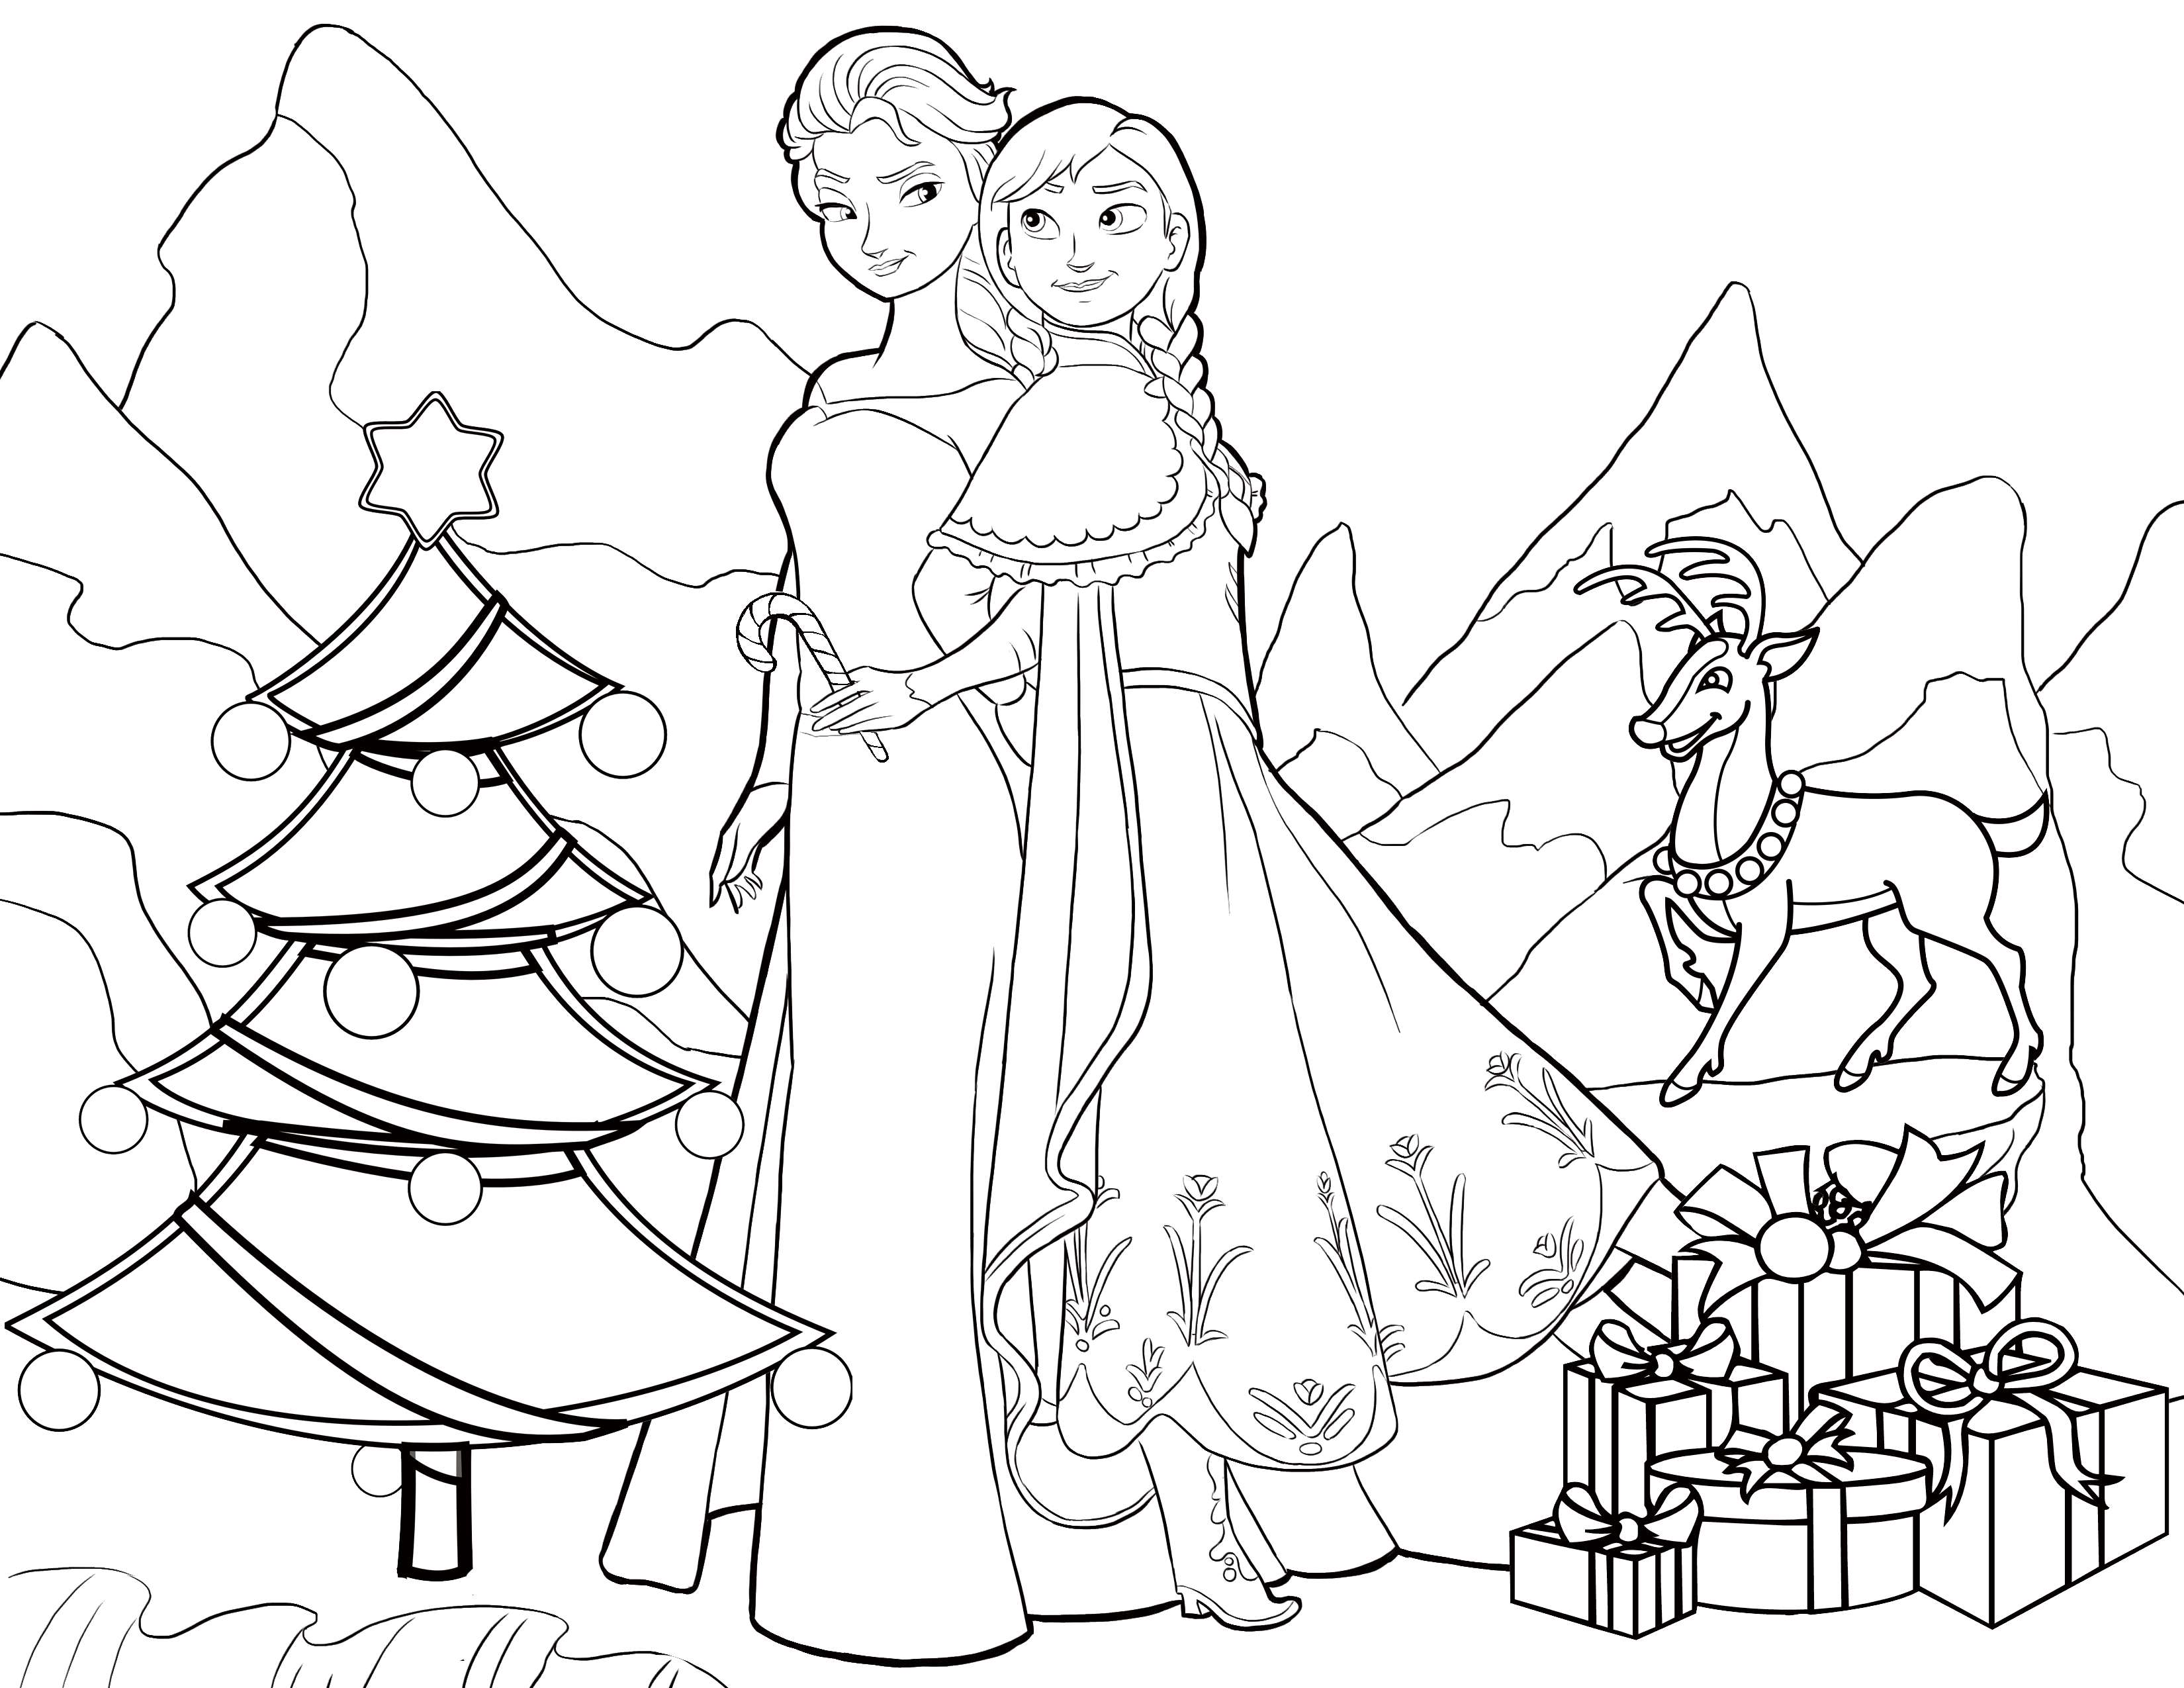 Elsa Christmas Coloring Pages Printable With Pics To Color Inspirational Frozen